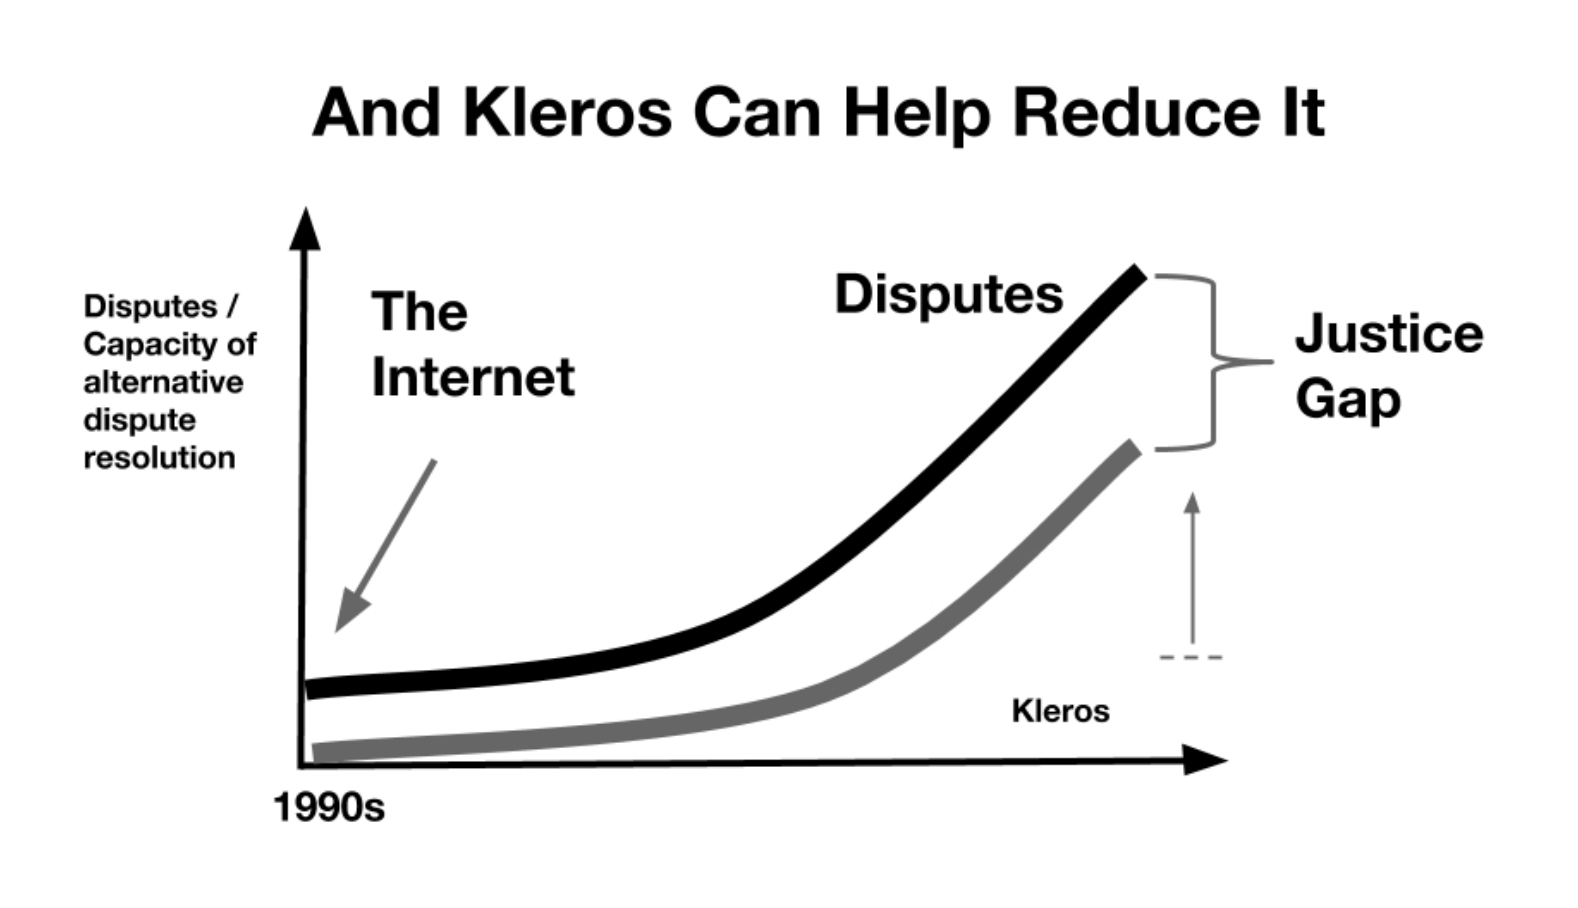 Figure 2. By using blockchain and cryptoeconomic incentives, Kleros can greatly increase the capacity for dispute resolution and keep up with the rising disputes of the internet age.